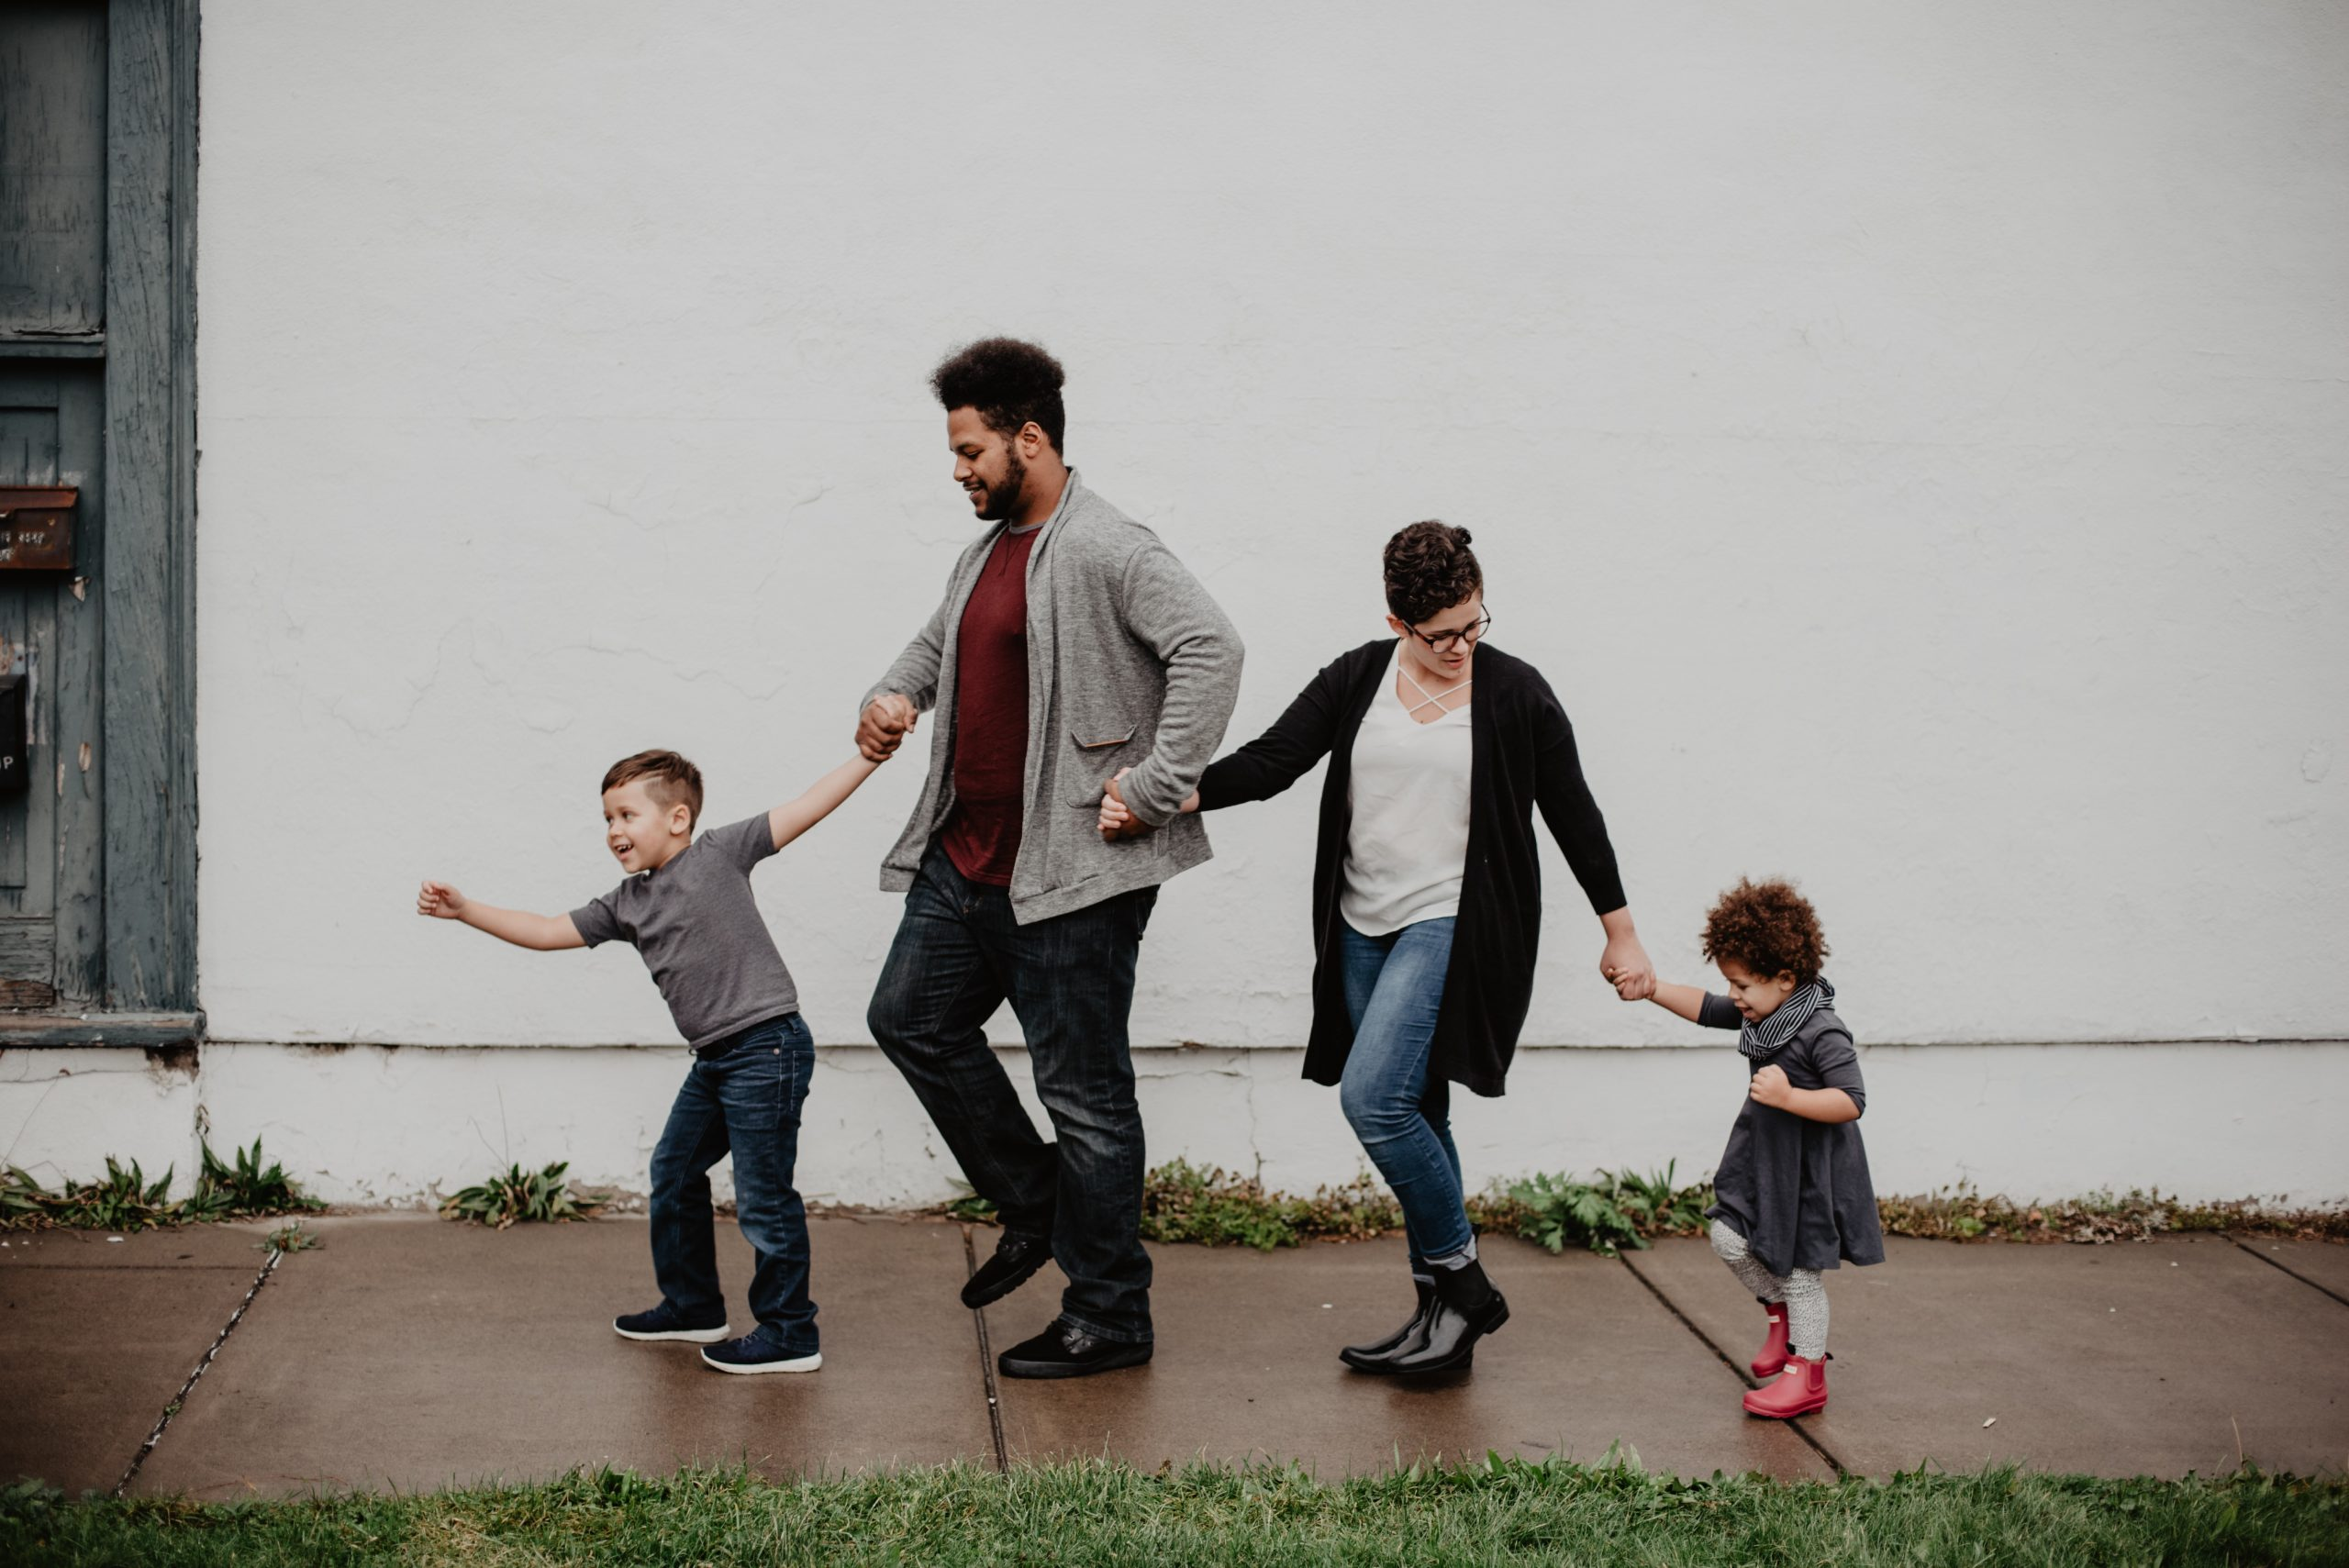 foster family consisting of a man and lady with 2 young children walking along a pavement in front of a white wall